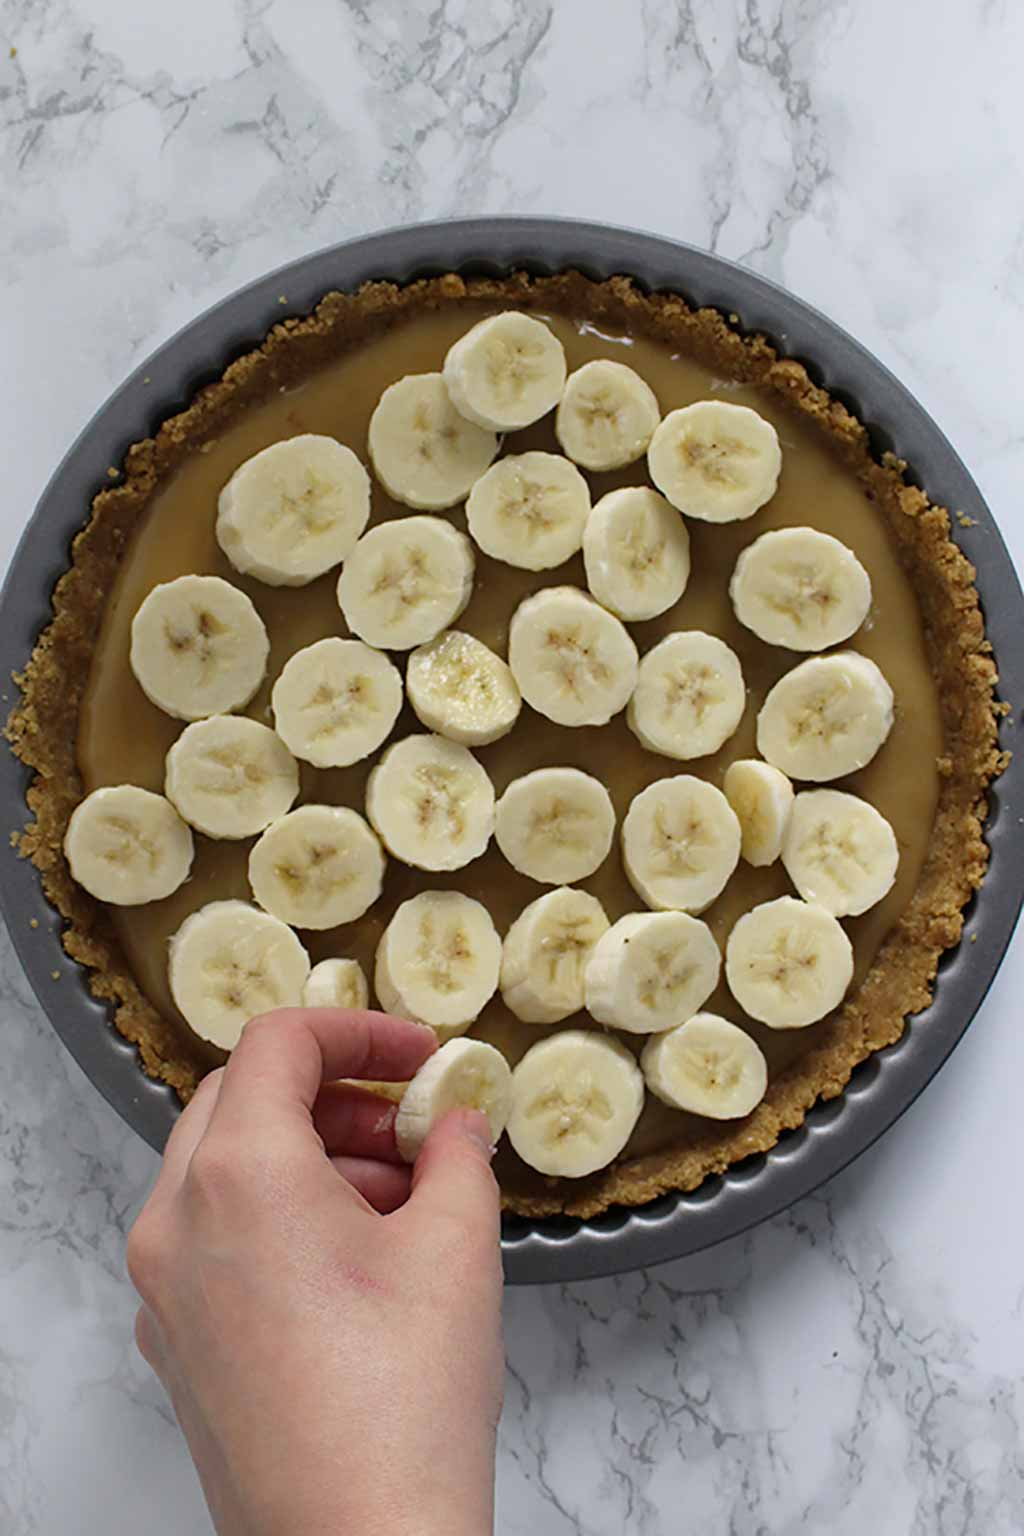 Placing Bananas On Top Of The Caramel